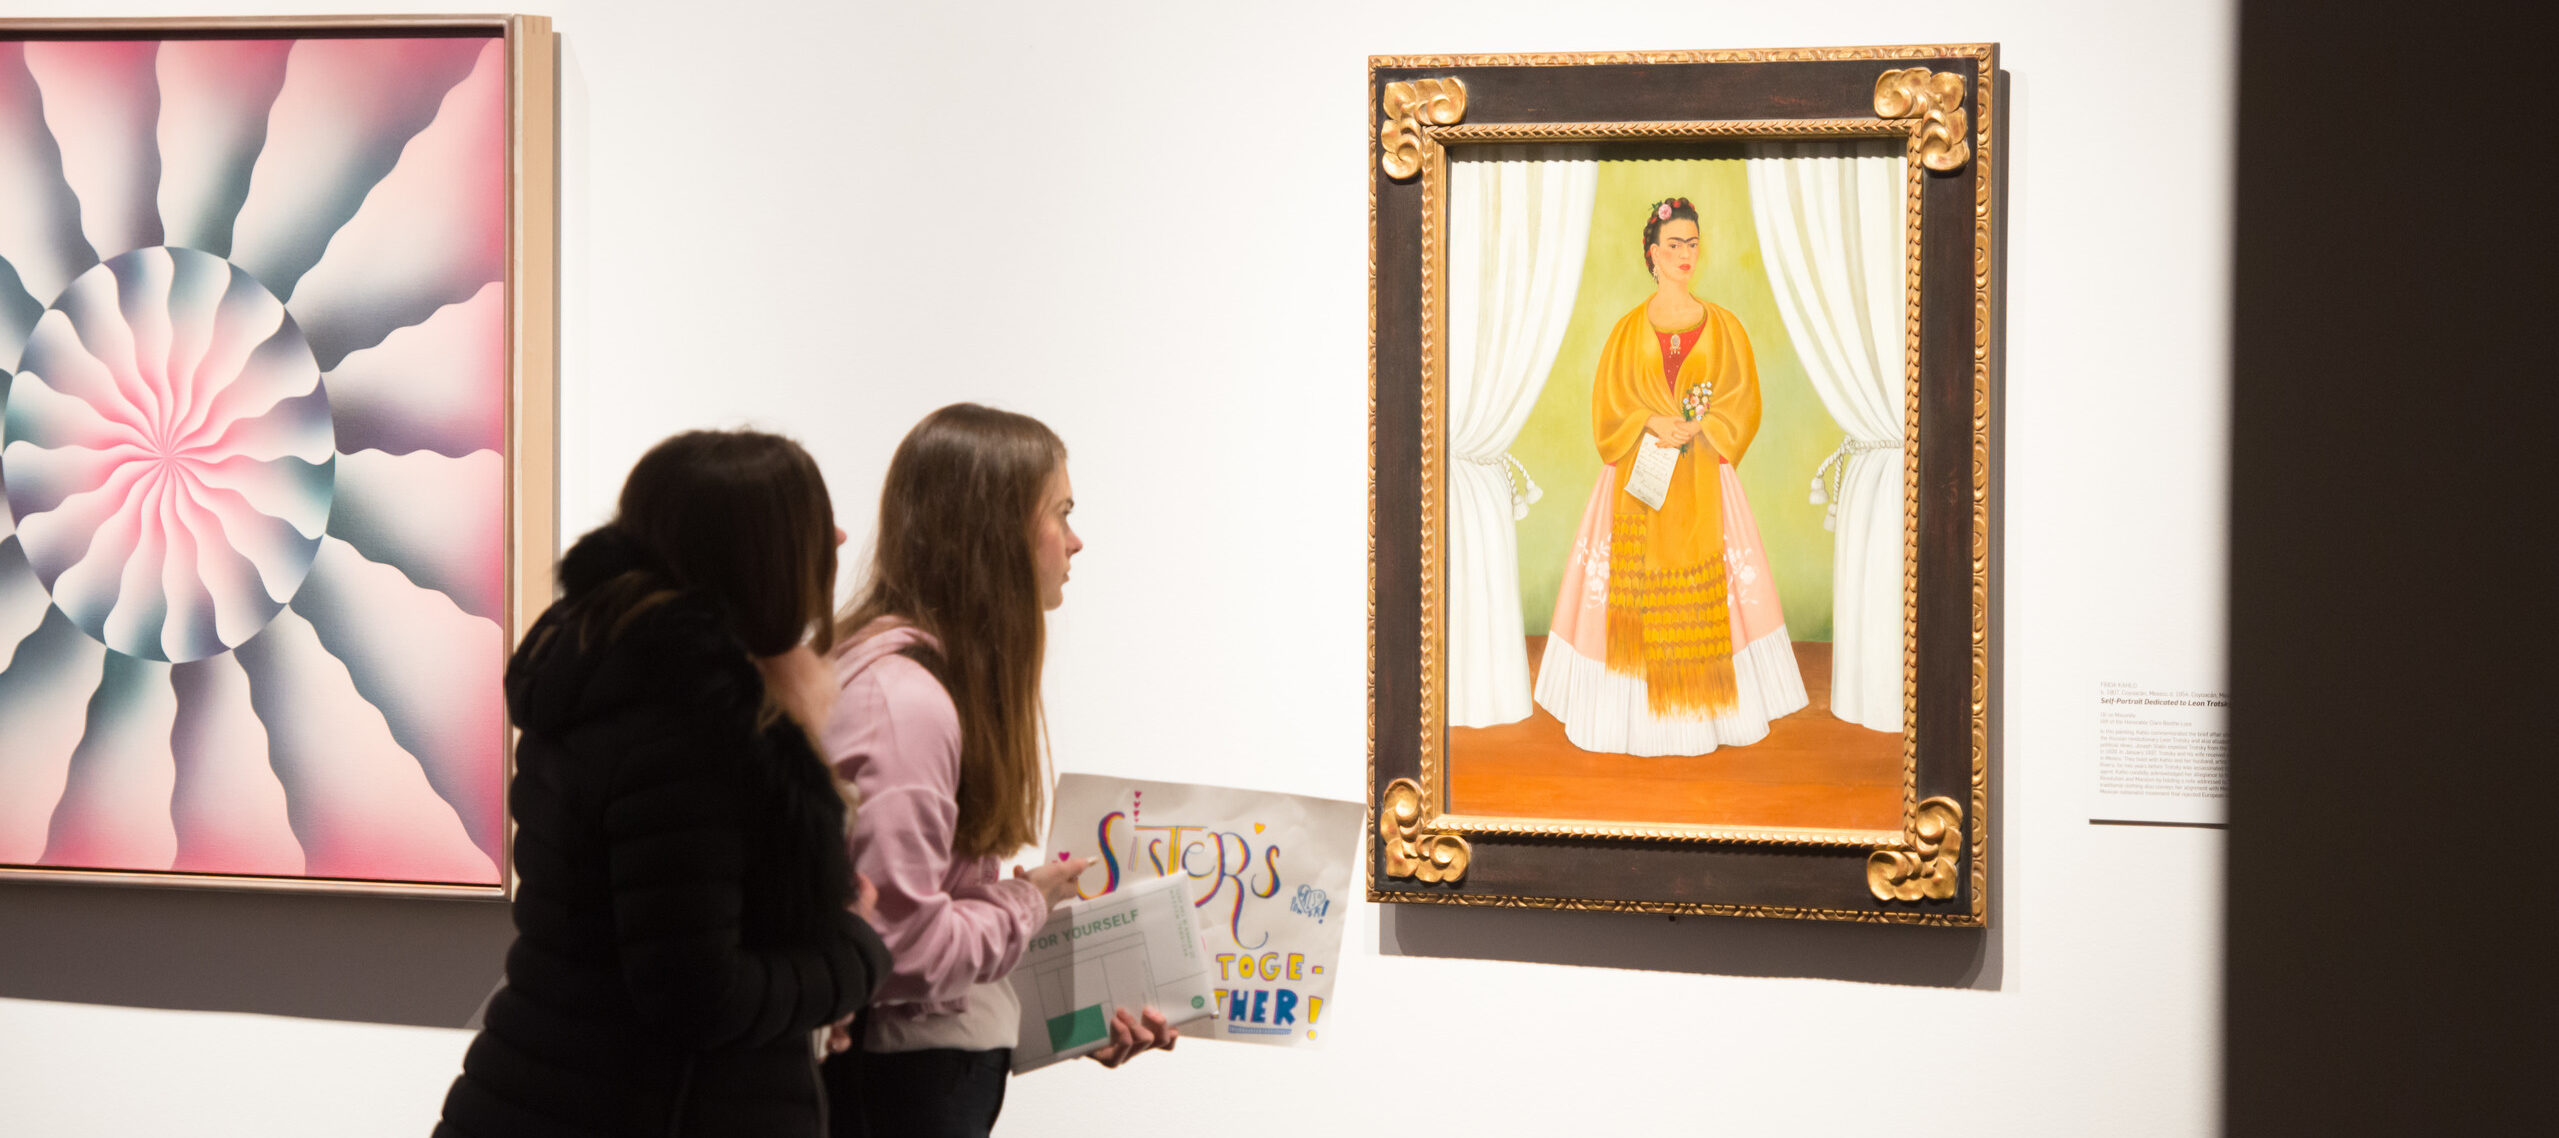 Two young women face away from the camera, craning to get a closer look at a self-portrait by Frida Kahlo